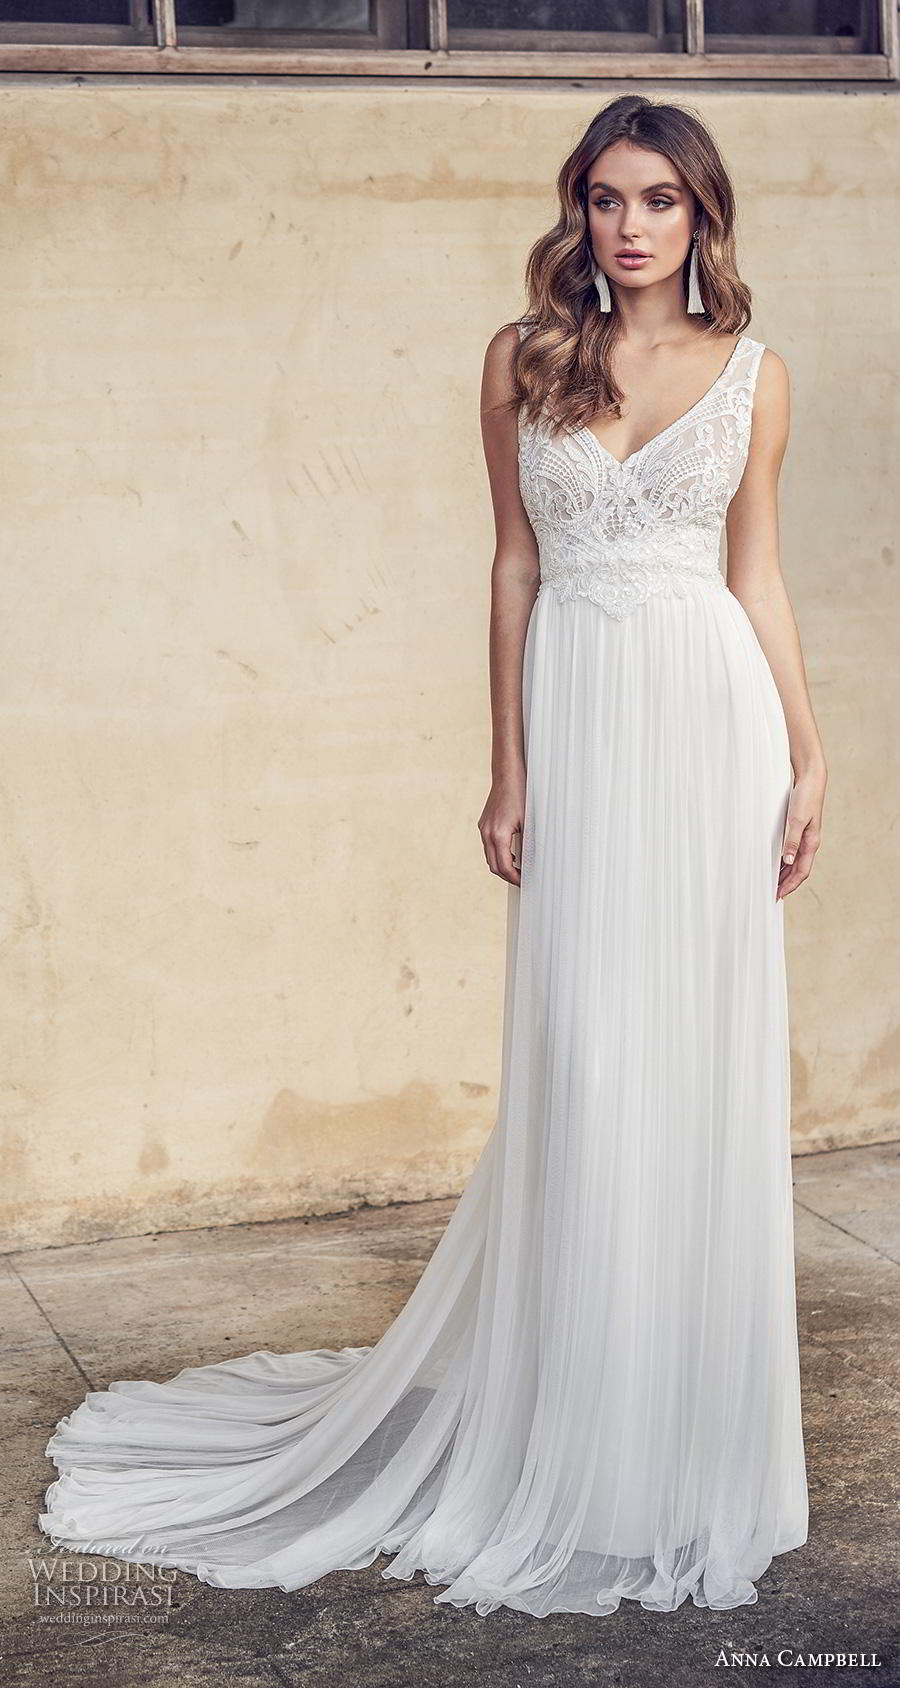 anna campbell 2019 bridal sleeveless with strap v neck heavily embellished bodice tulle skirt romantic soft a line wedding dress backless scoop back chapel train (15) mv